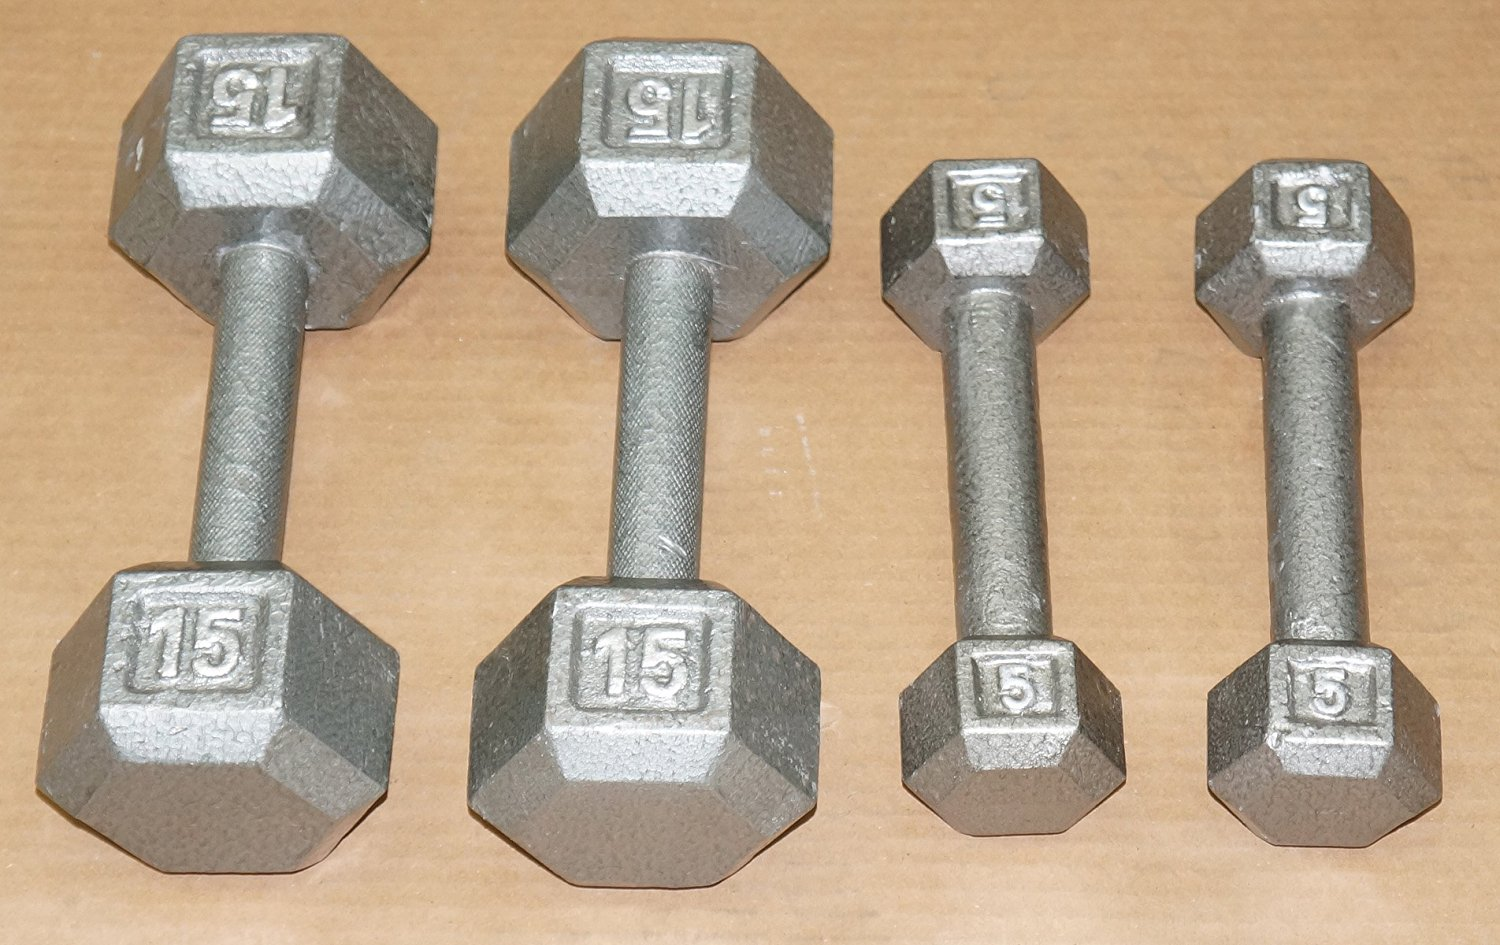 TDS Cast Iron Hex Dumbell Package 5 & 15 lb.- (one 5lb & one 15lb)